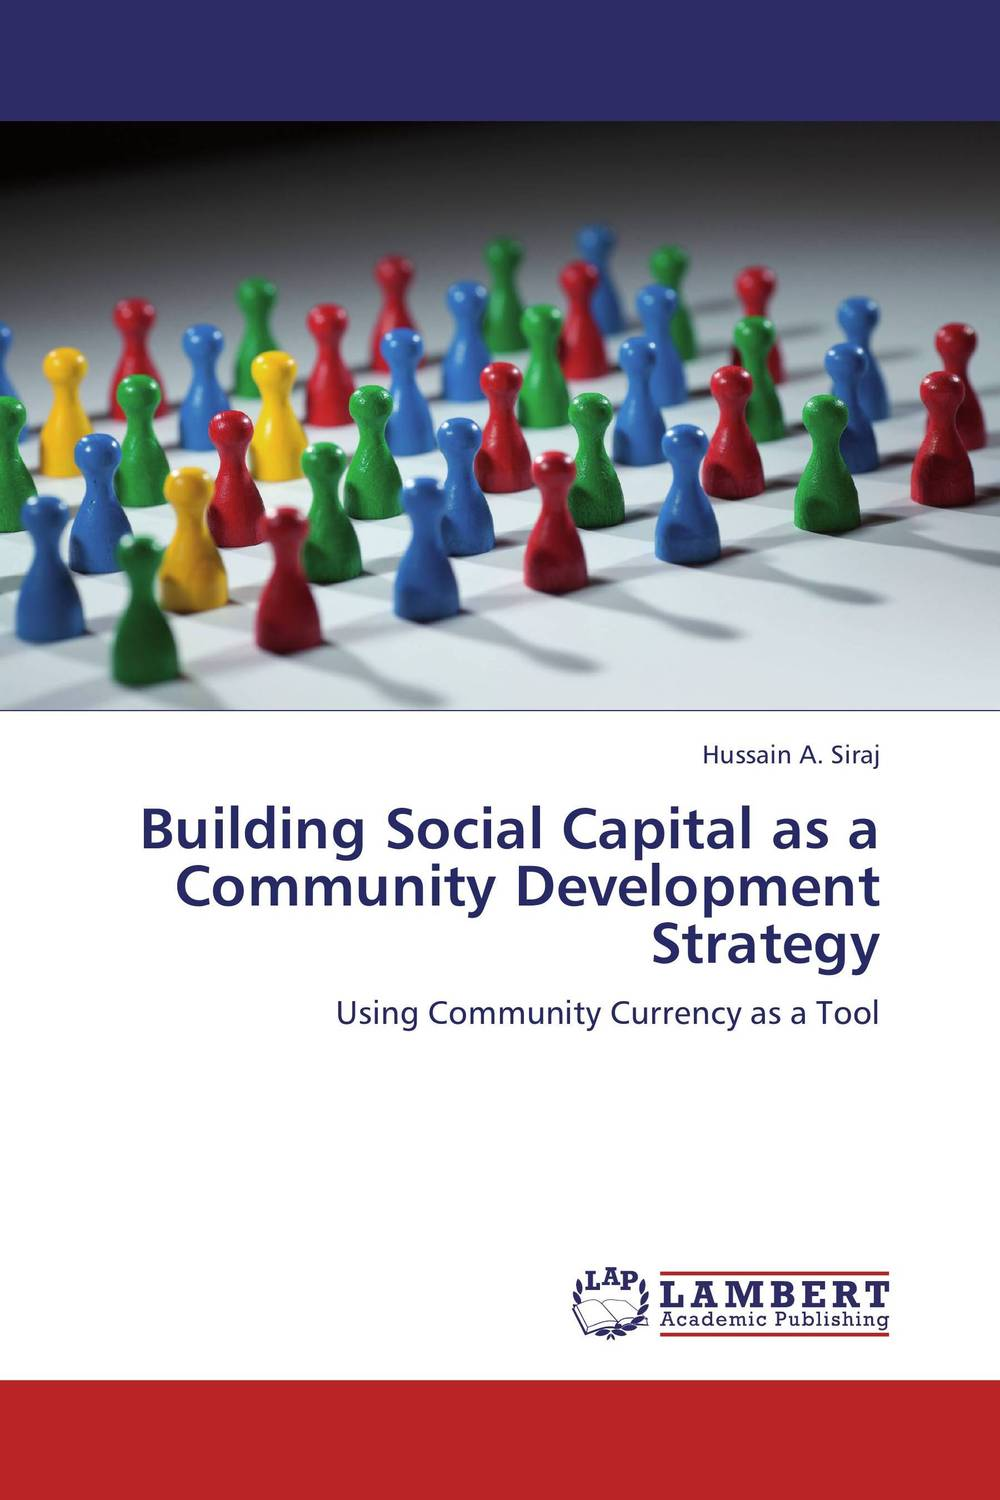 Building Social Capital as a Community Development Strategy i manev social capital and strategy effectiveness an empirical study of entrepreneurial ventures in a transition economy